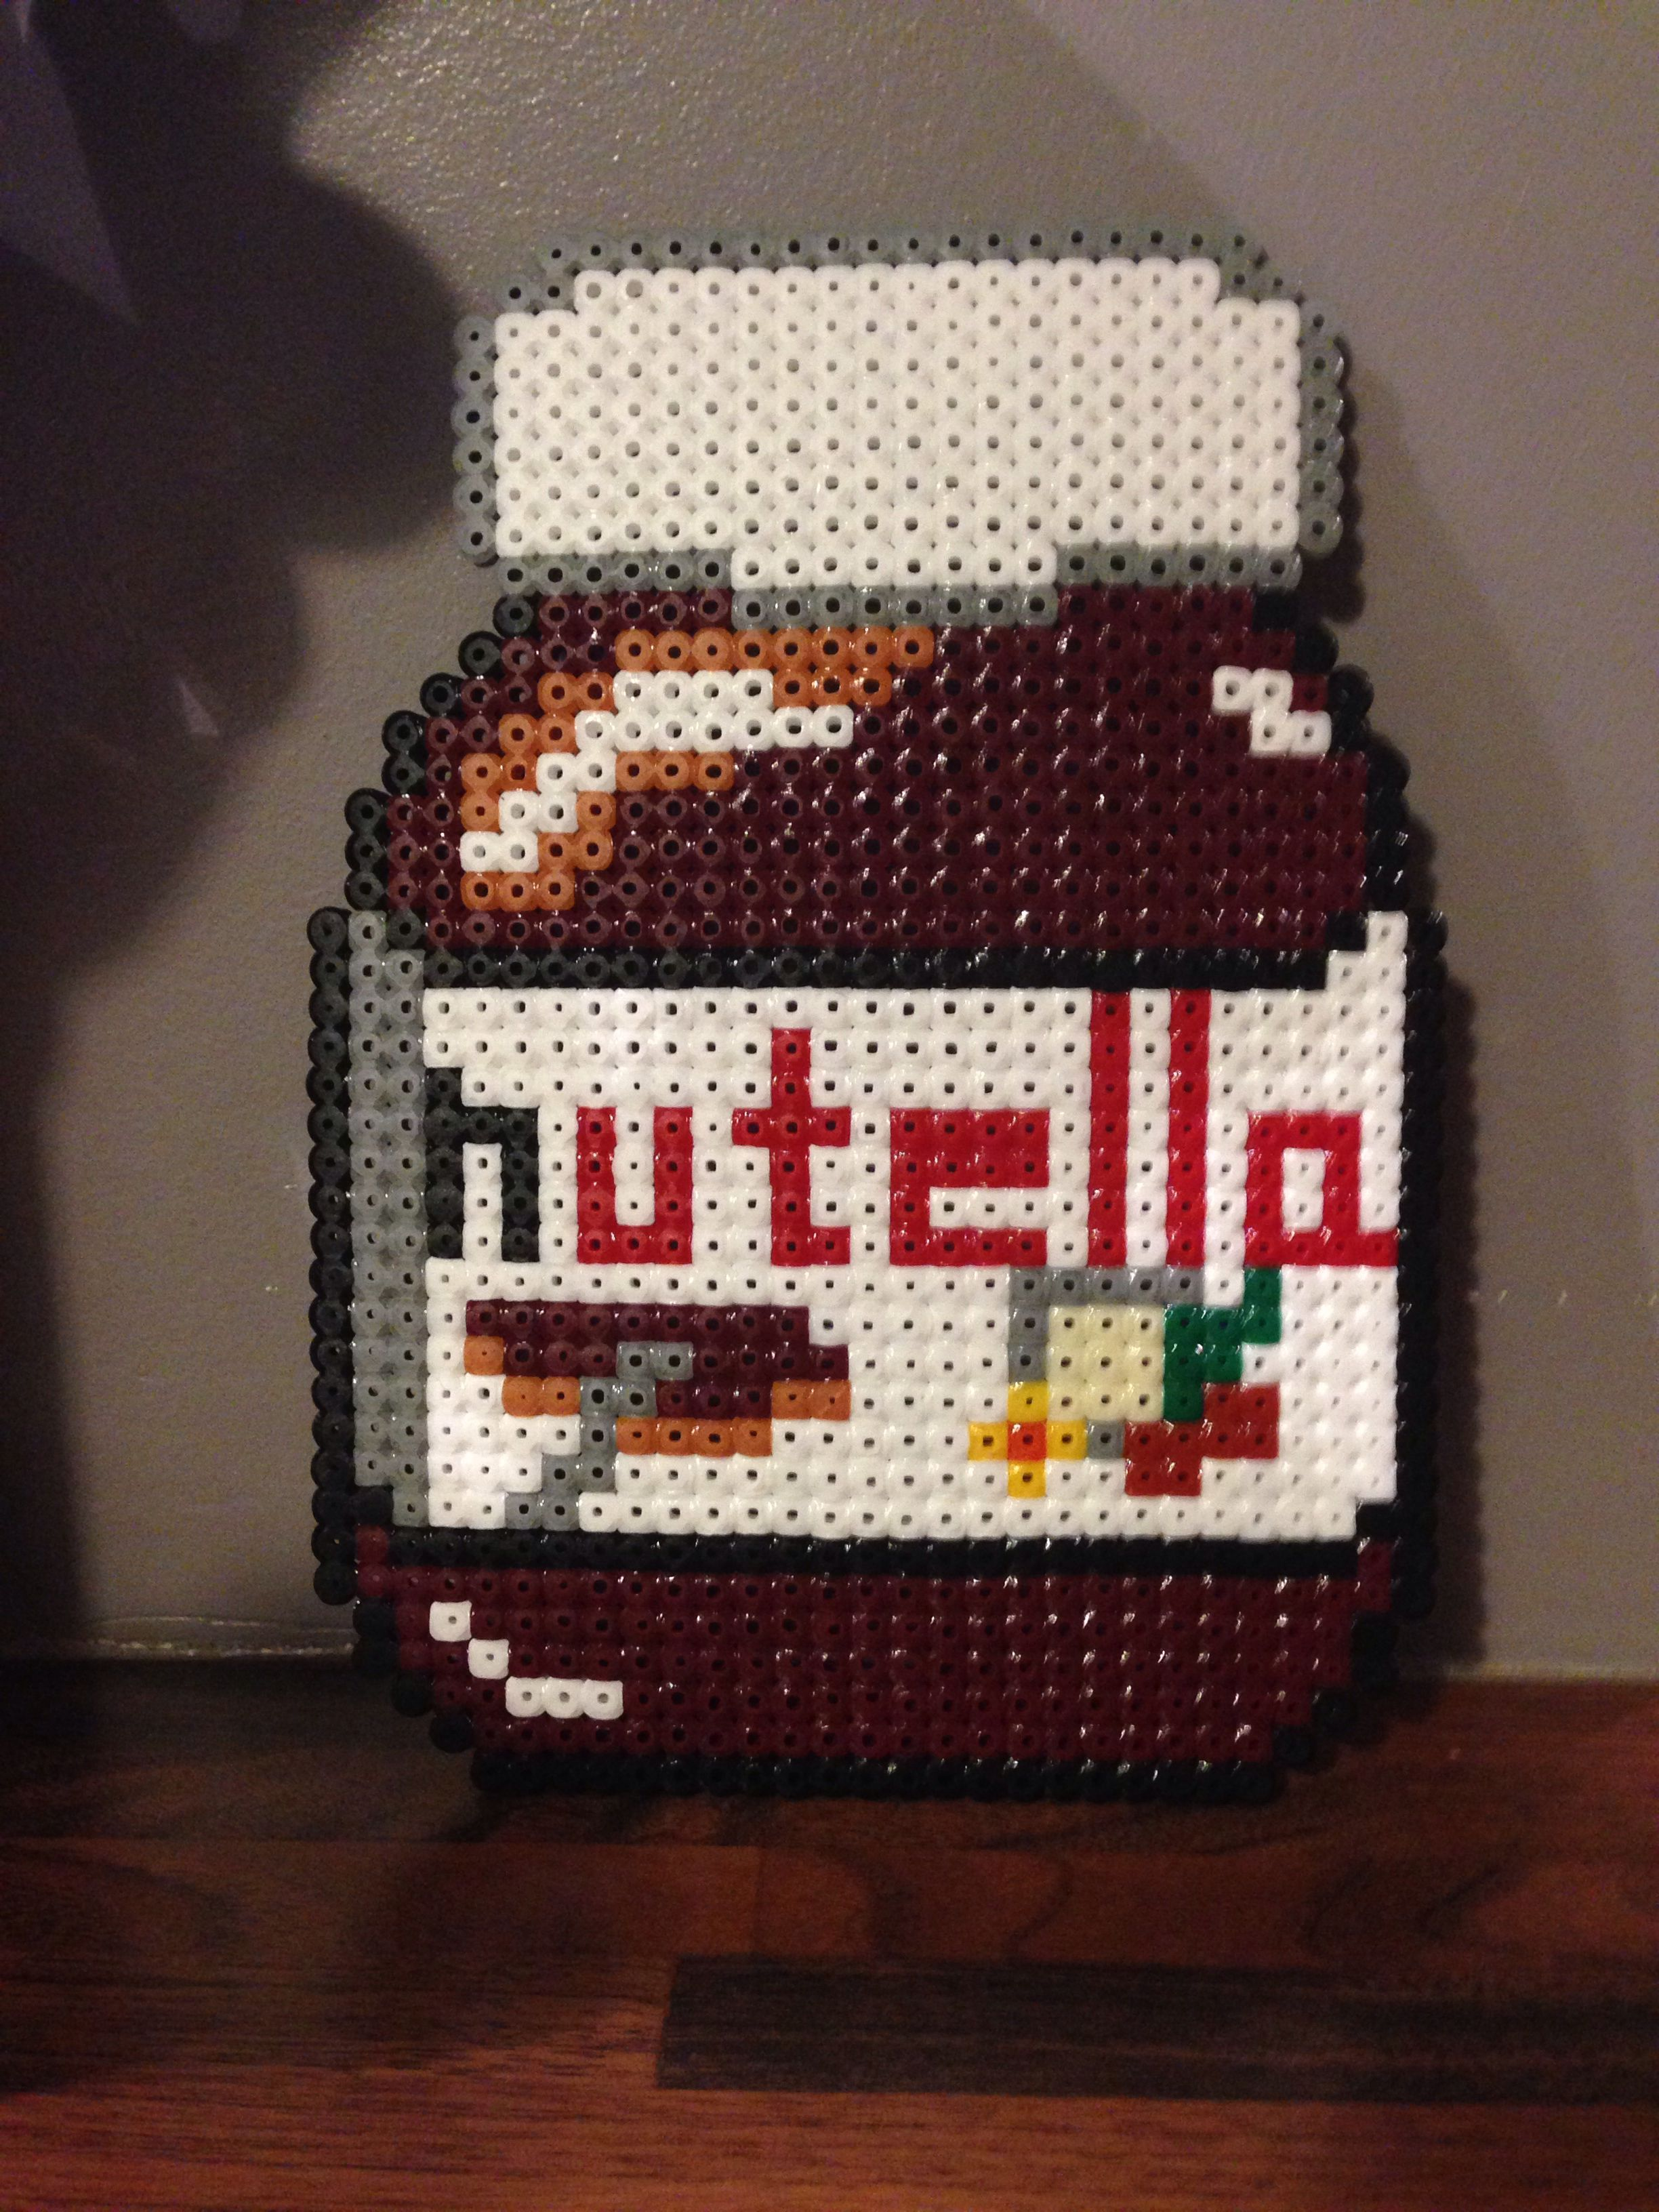 Art Pixel Art Pot De Nutella Kawaii